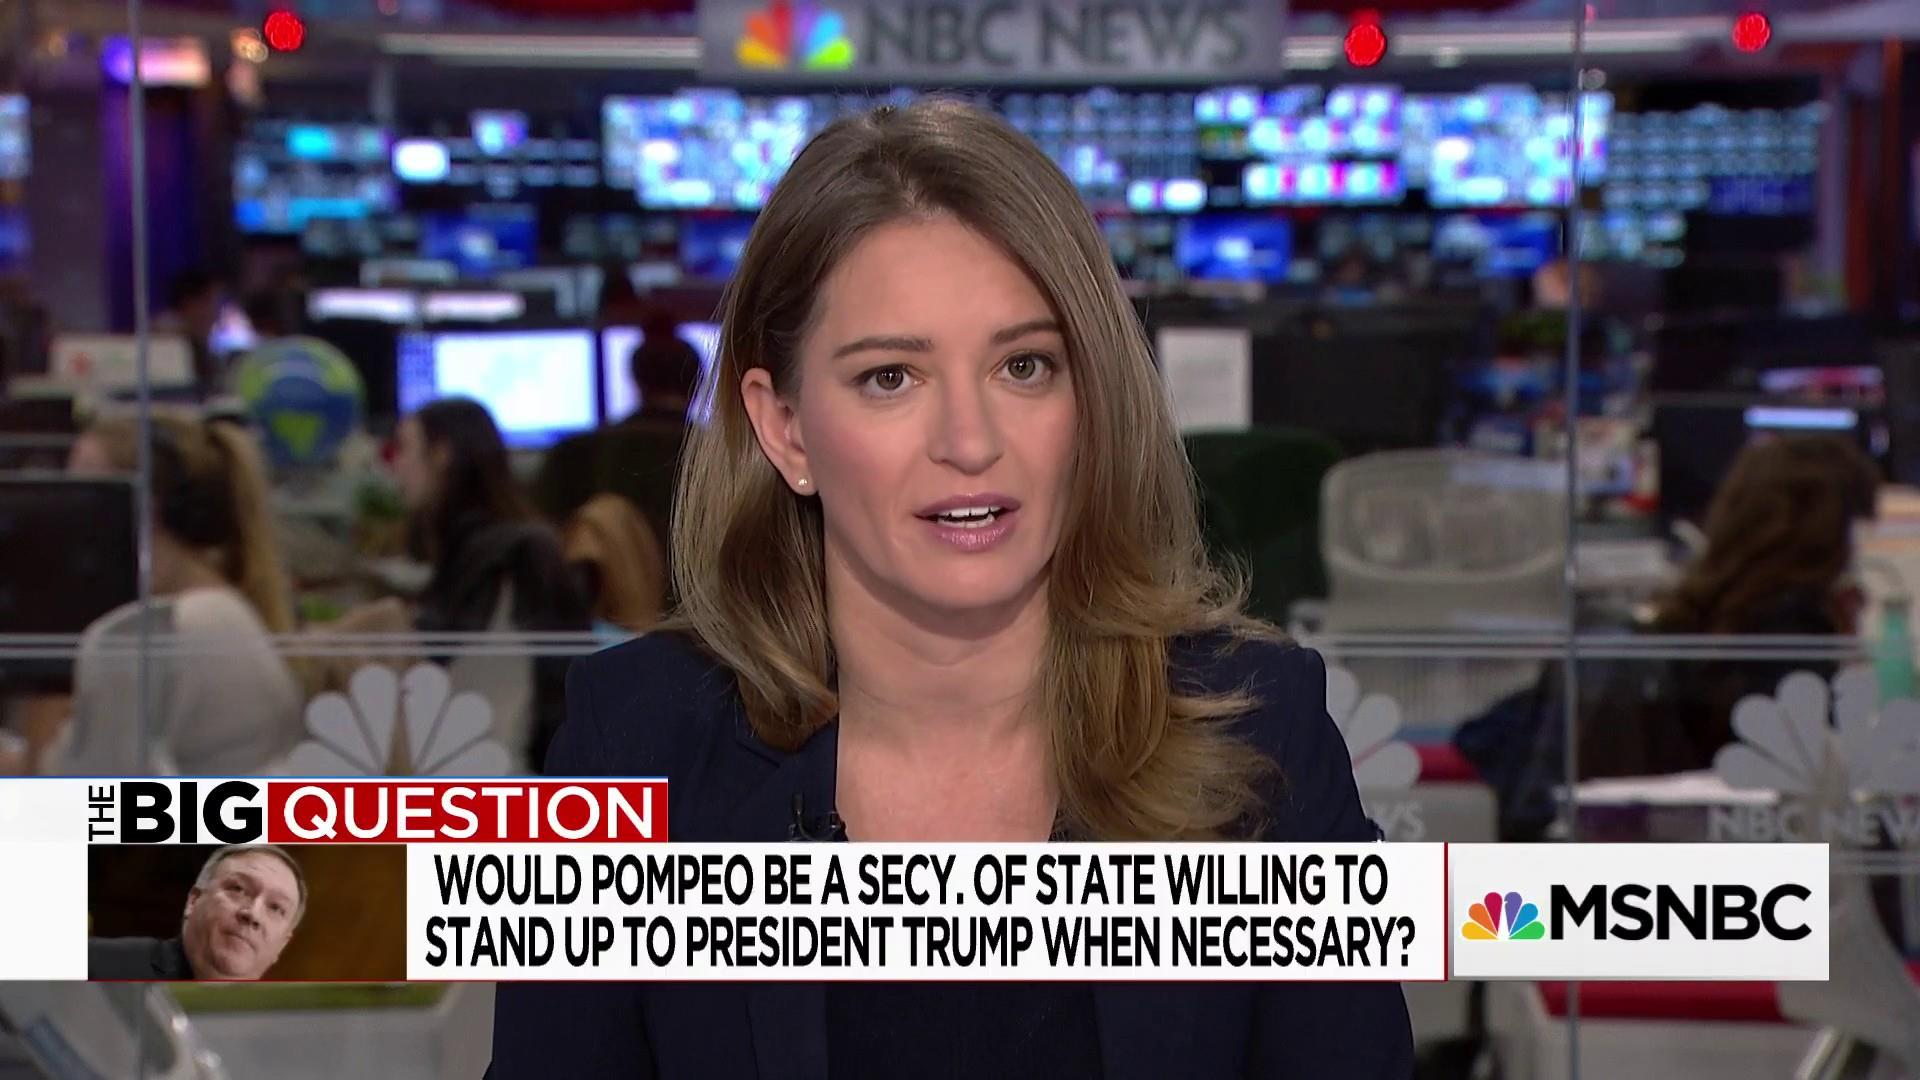 The Big Question: Would Pompeo be a Secretary of State willing to stand up to the President?